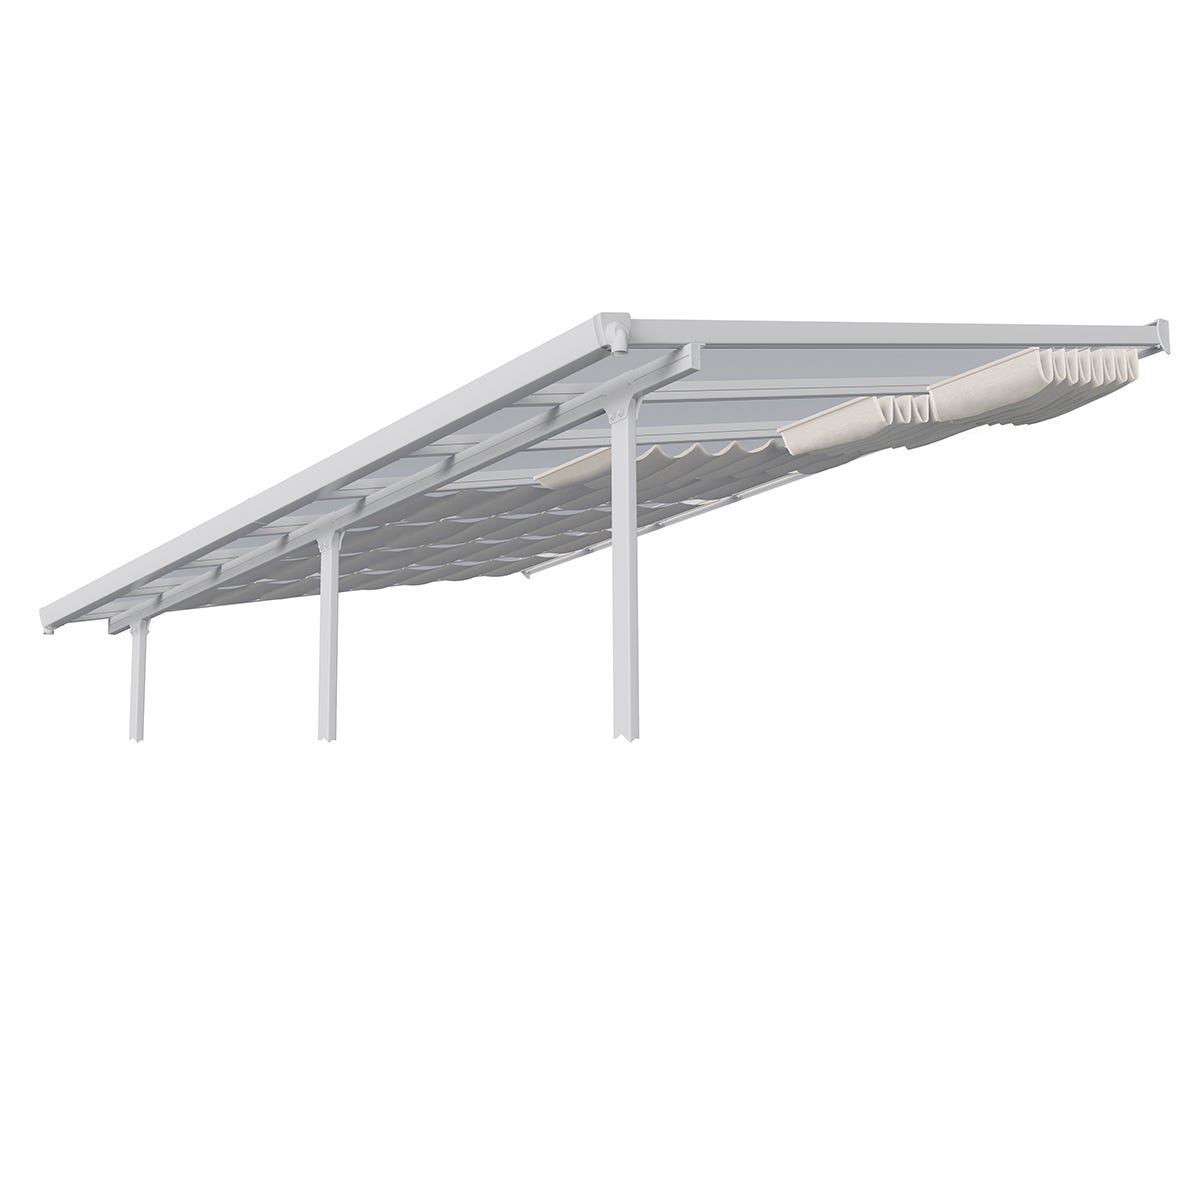 Palram - Canopia Patio Cover Roof Blinds 3m x 5.46m - White